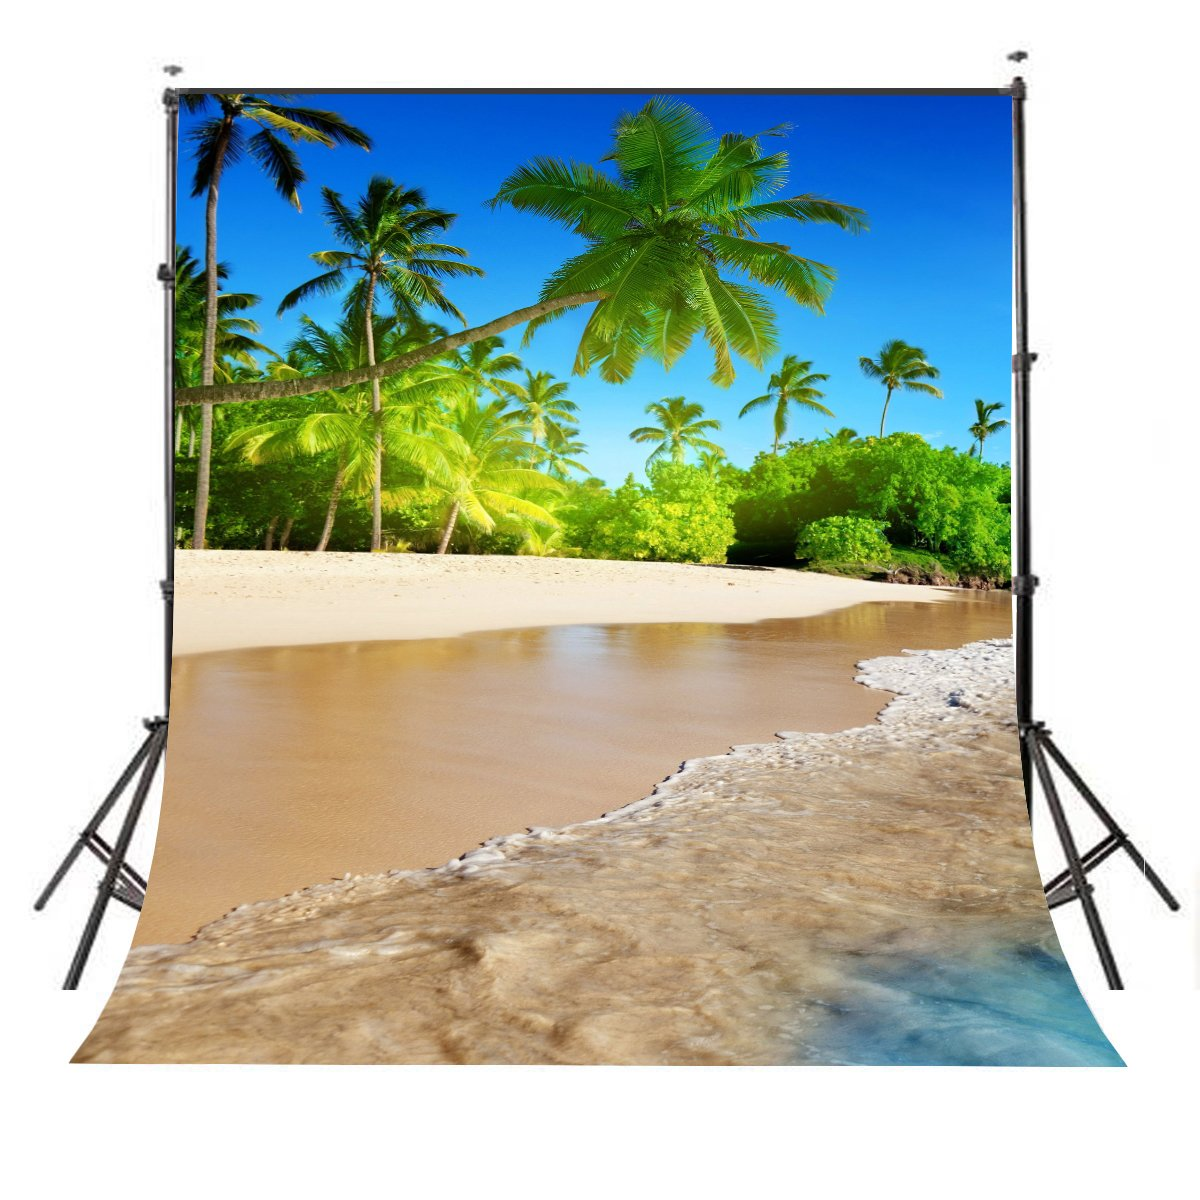 Lyly County Photography Background 5x7ft Summer Sunshine Natural Beach Coast Tropical Paradise Blue Sea Sky Coconut Tree Photo Studio Props (Upgrade material) LY032 by LYLYCTY